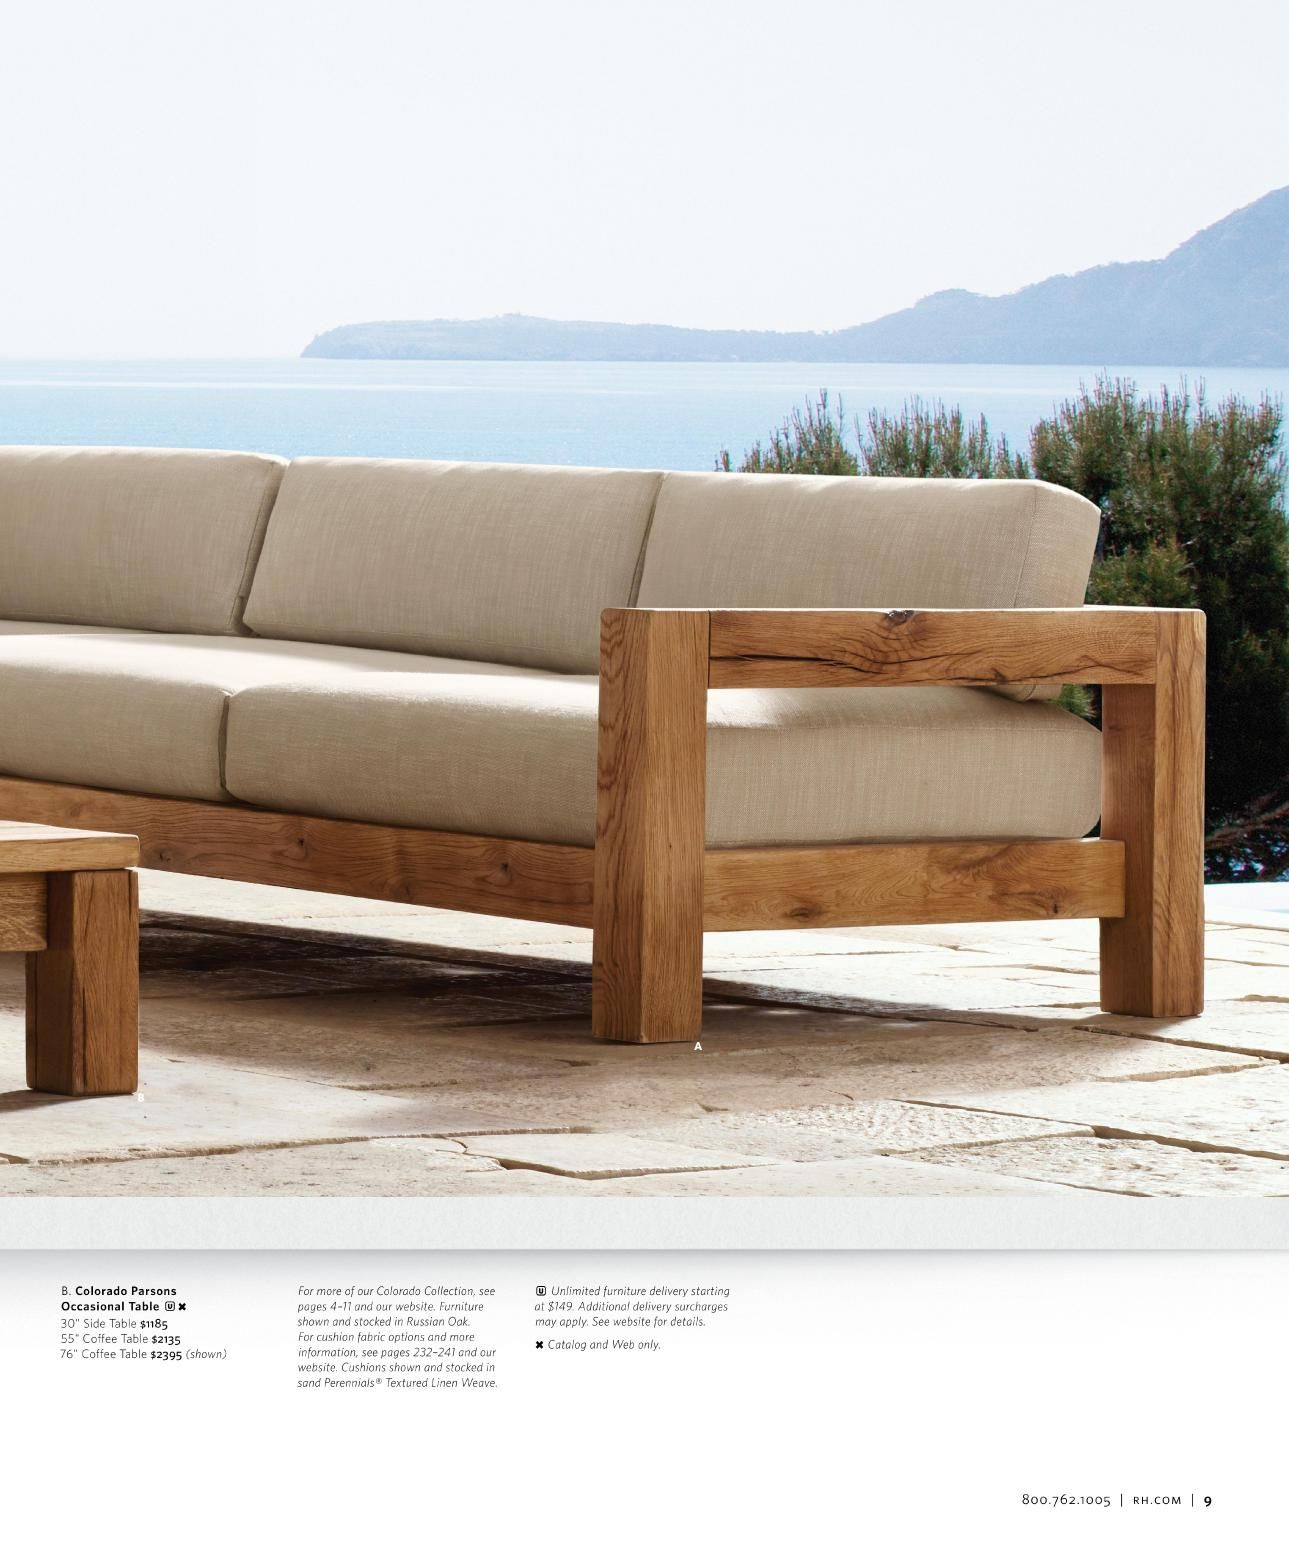 Muebles De Jardin Amazon Restoration Hardware Source Book Outdoor Ideas To